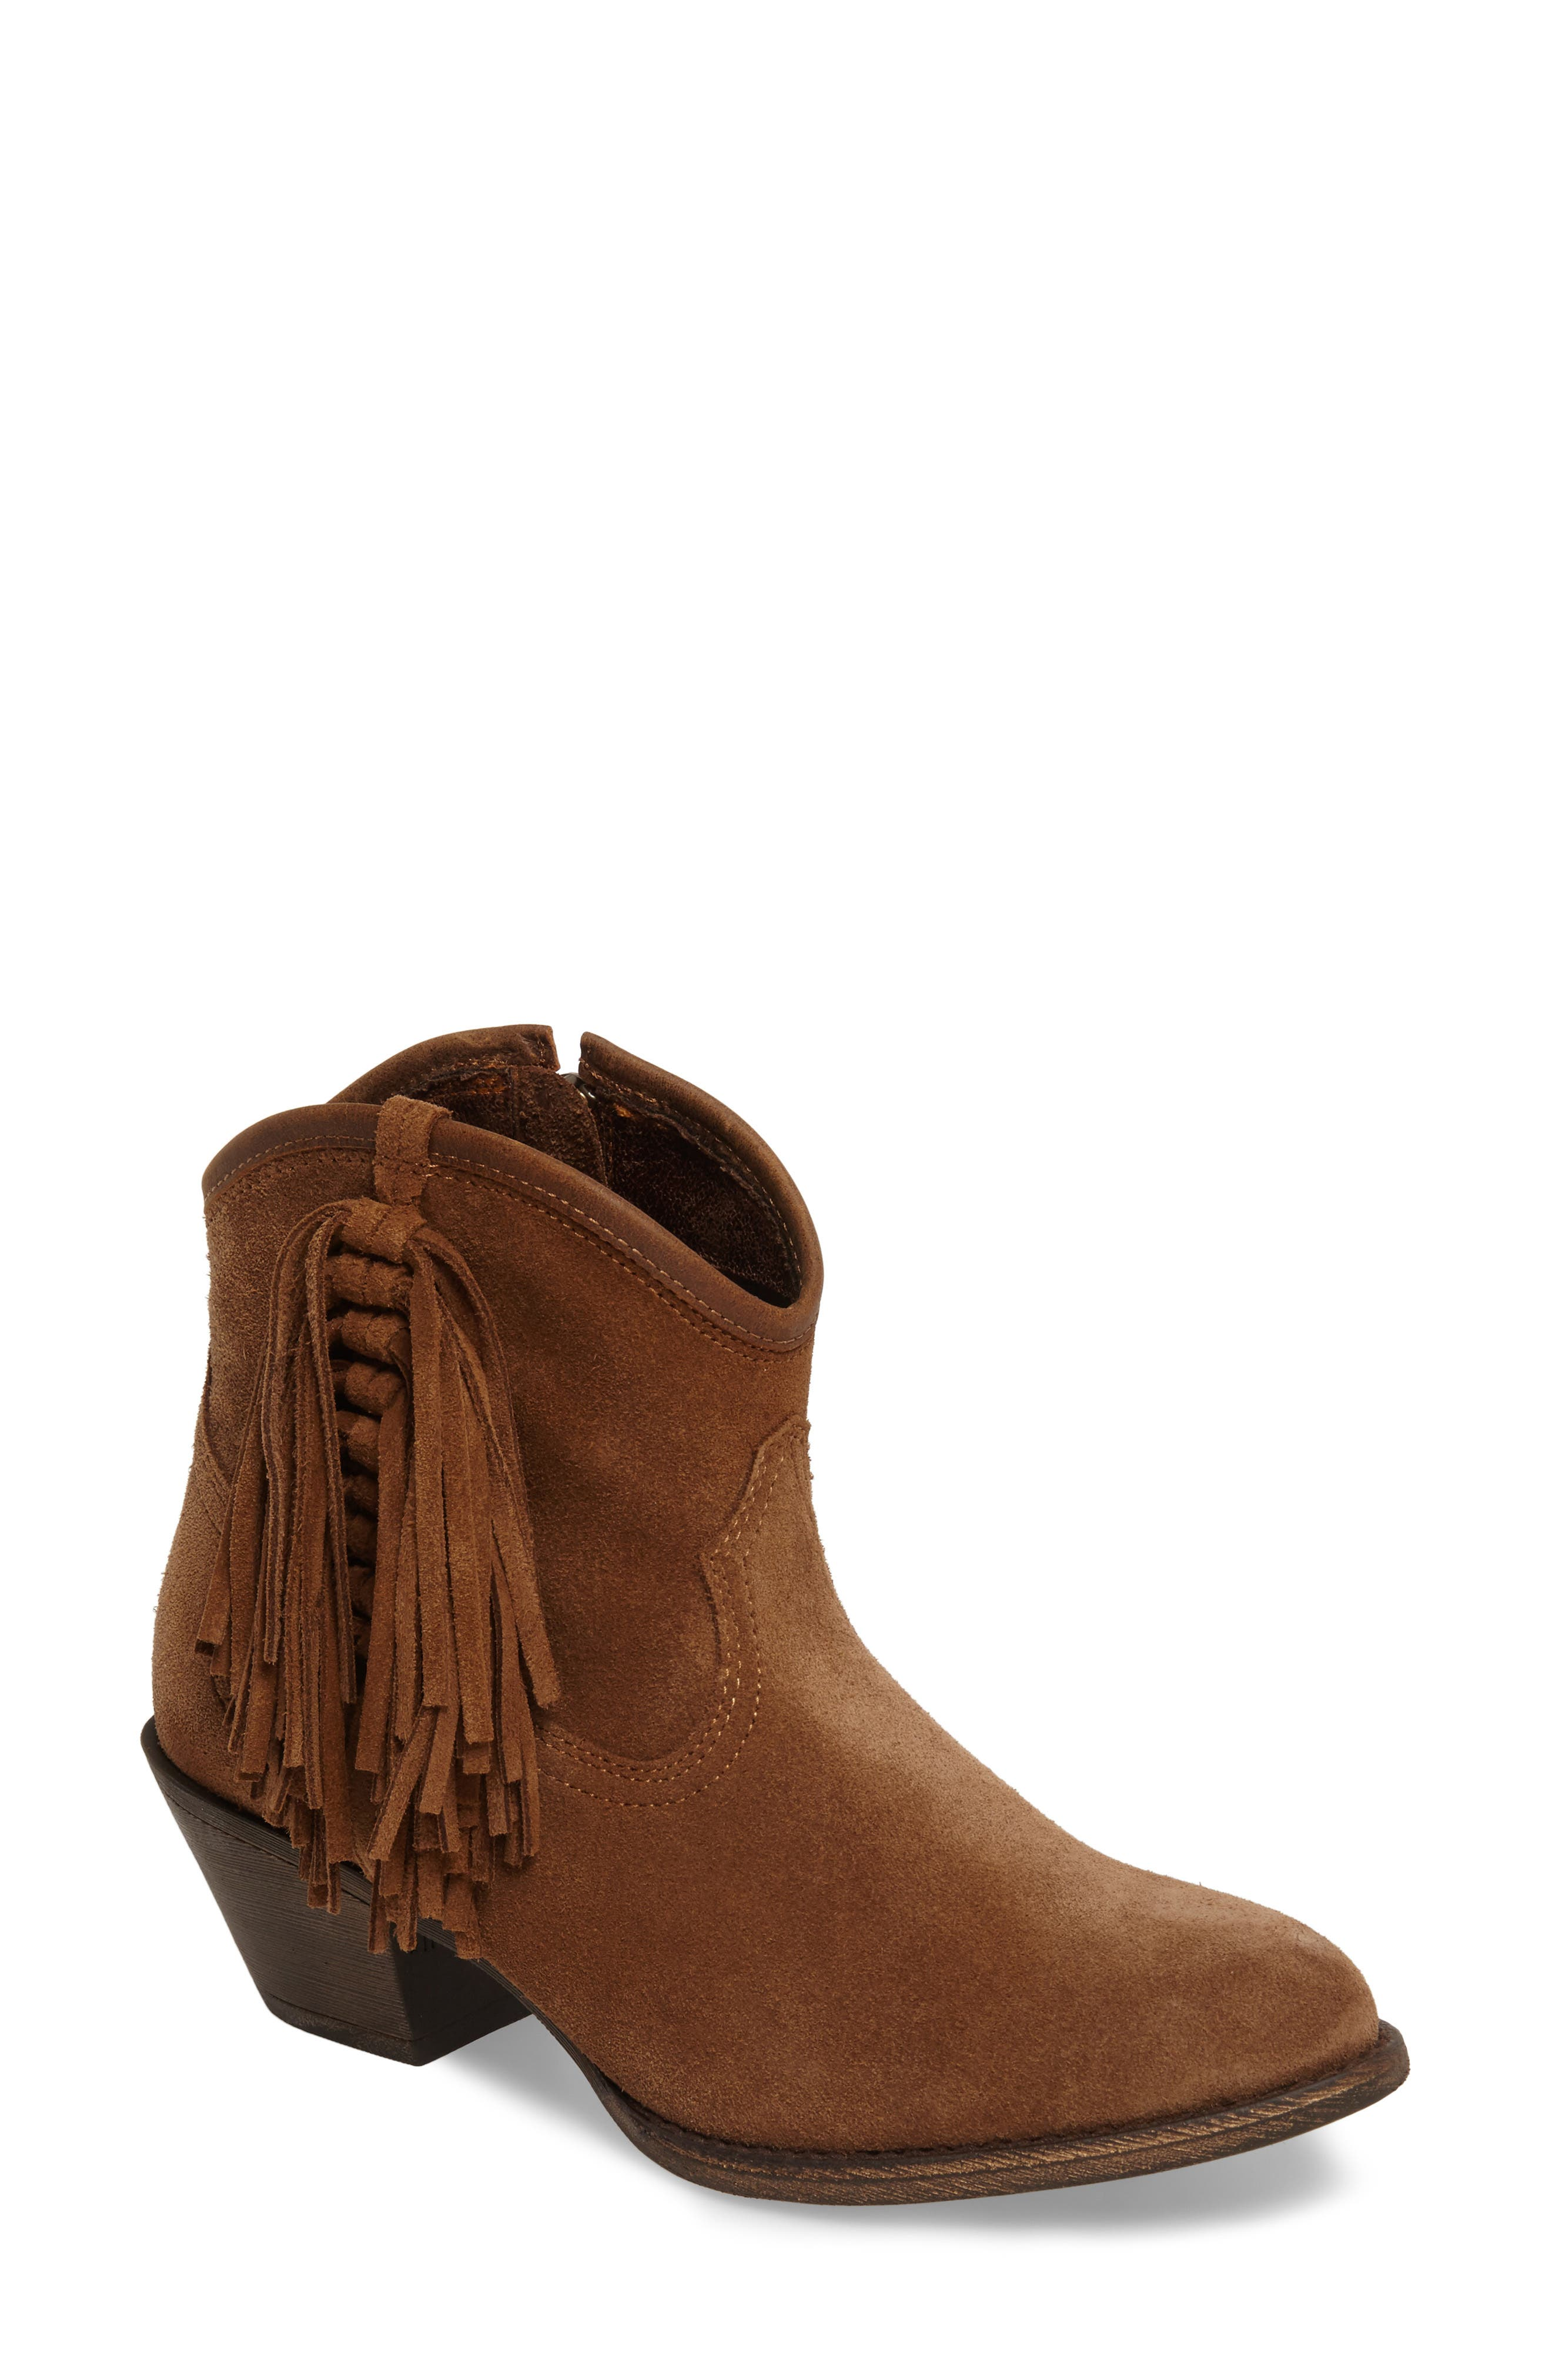 Duchess Western Boot,                         Main,                         color, Dirty Tan Suede